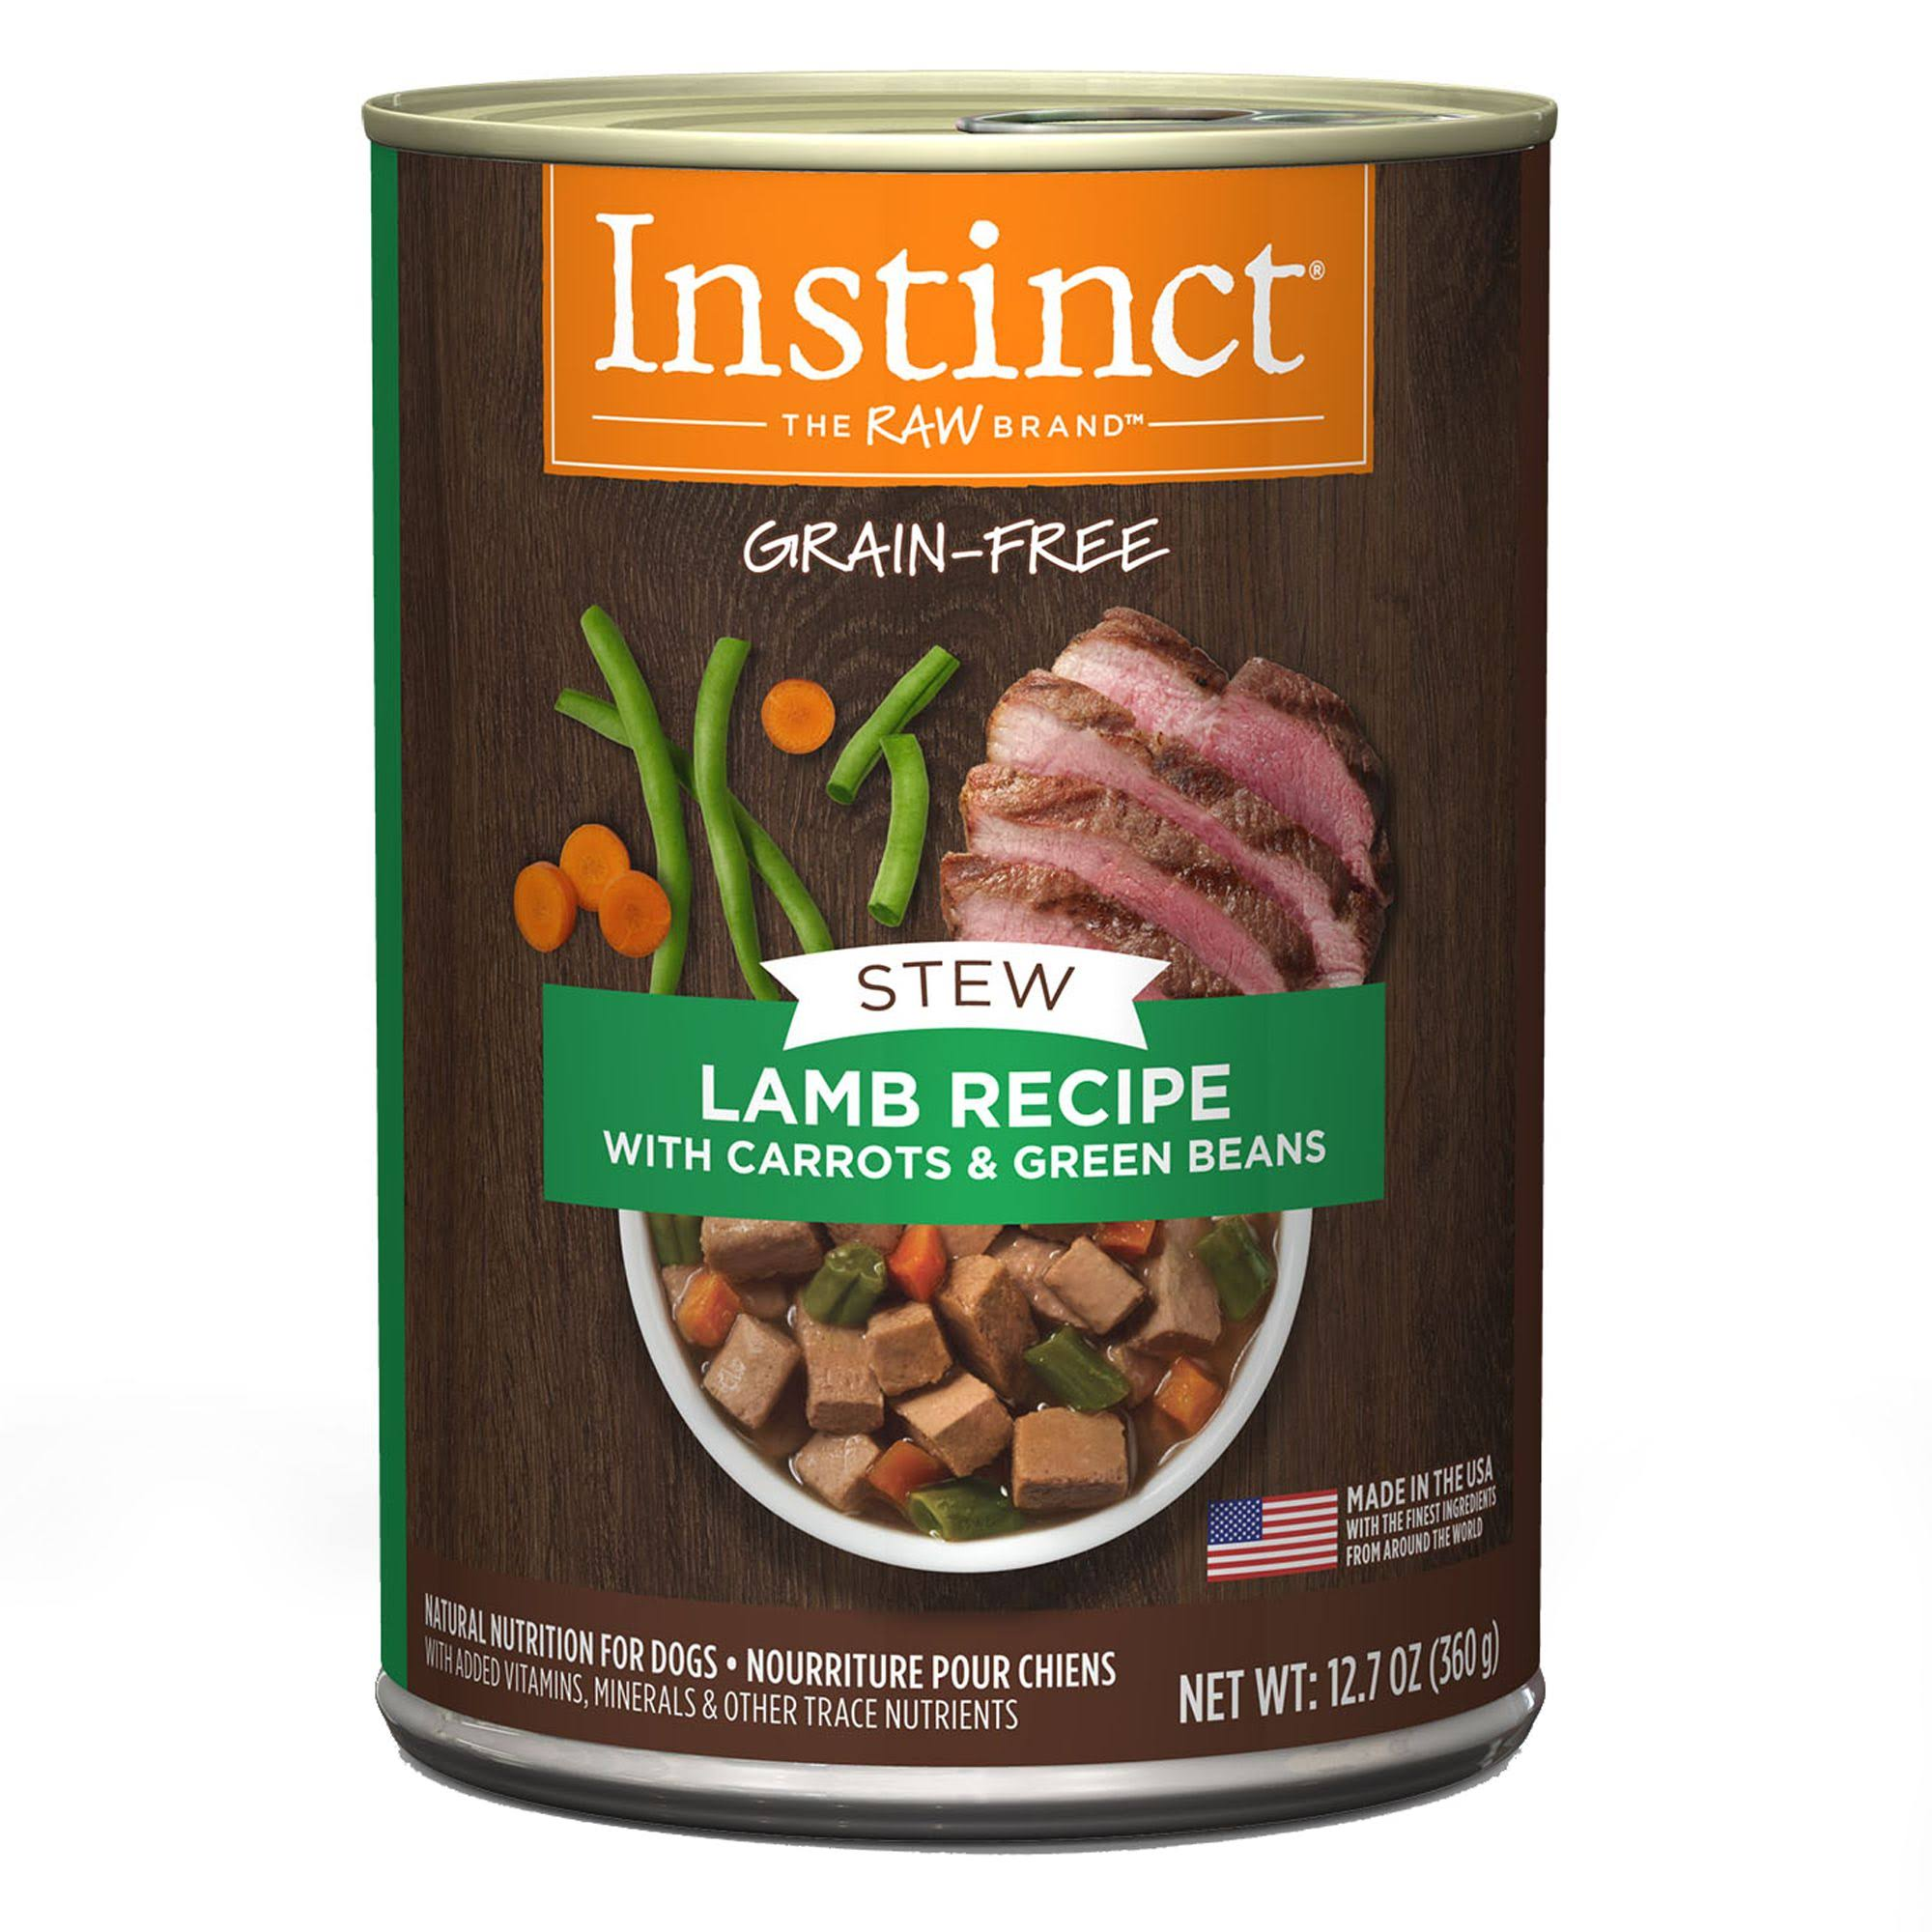 Instinct Wet Canine Stews Lamb Recipe with Carrots and Green Beans